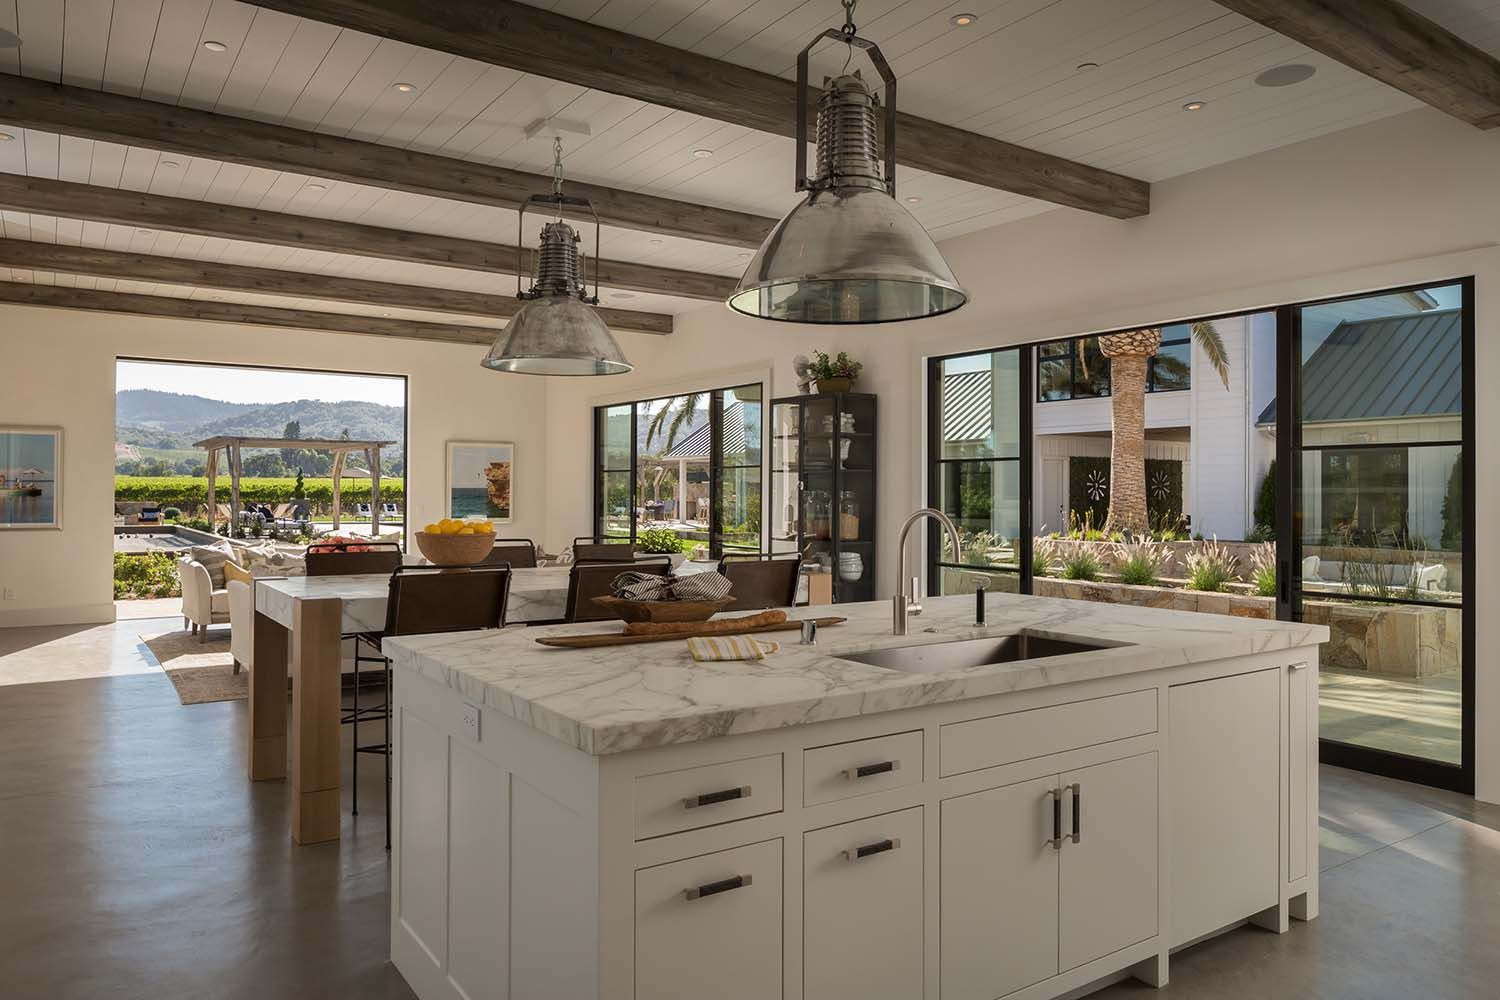 fresh modern farmhouse style with stunning views of napa wine country home decor kitchen on kitchen remodel modern farmhouse id=75293